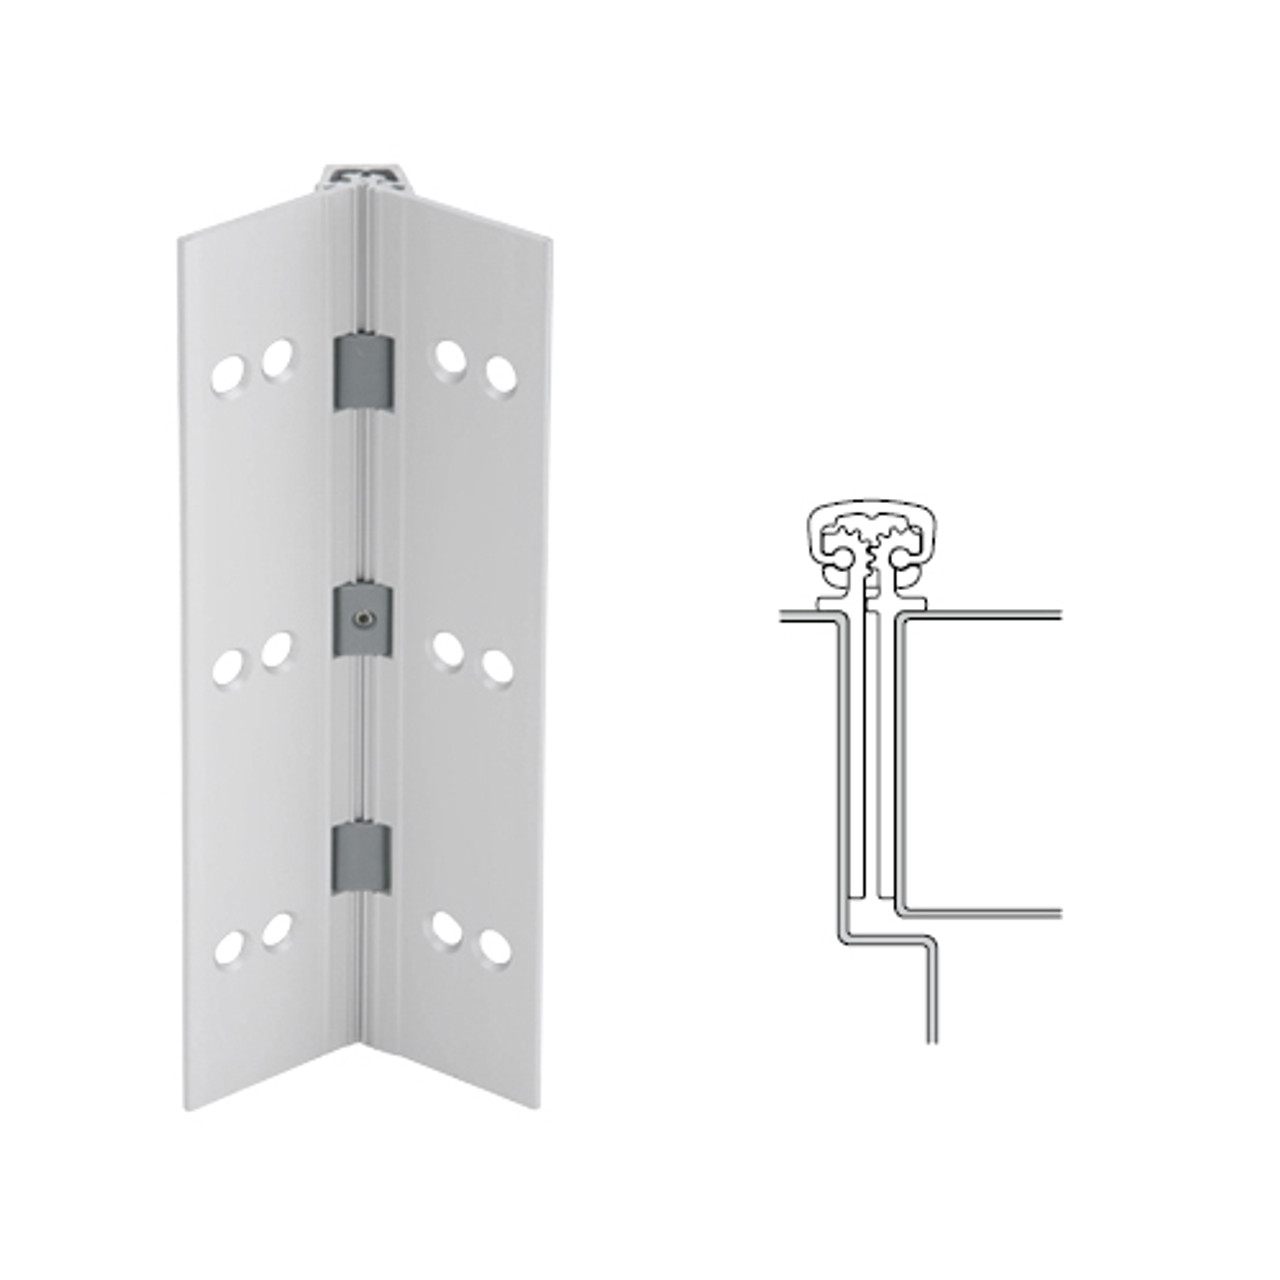 027XY-US28-85-SECWDWD IVES Full Mortise Continuous Geared Hinges with Security Screws - Hex Pin Drive in Satin Aluminum